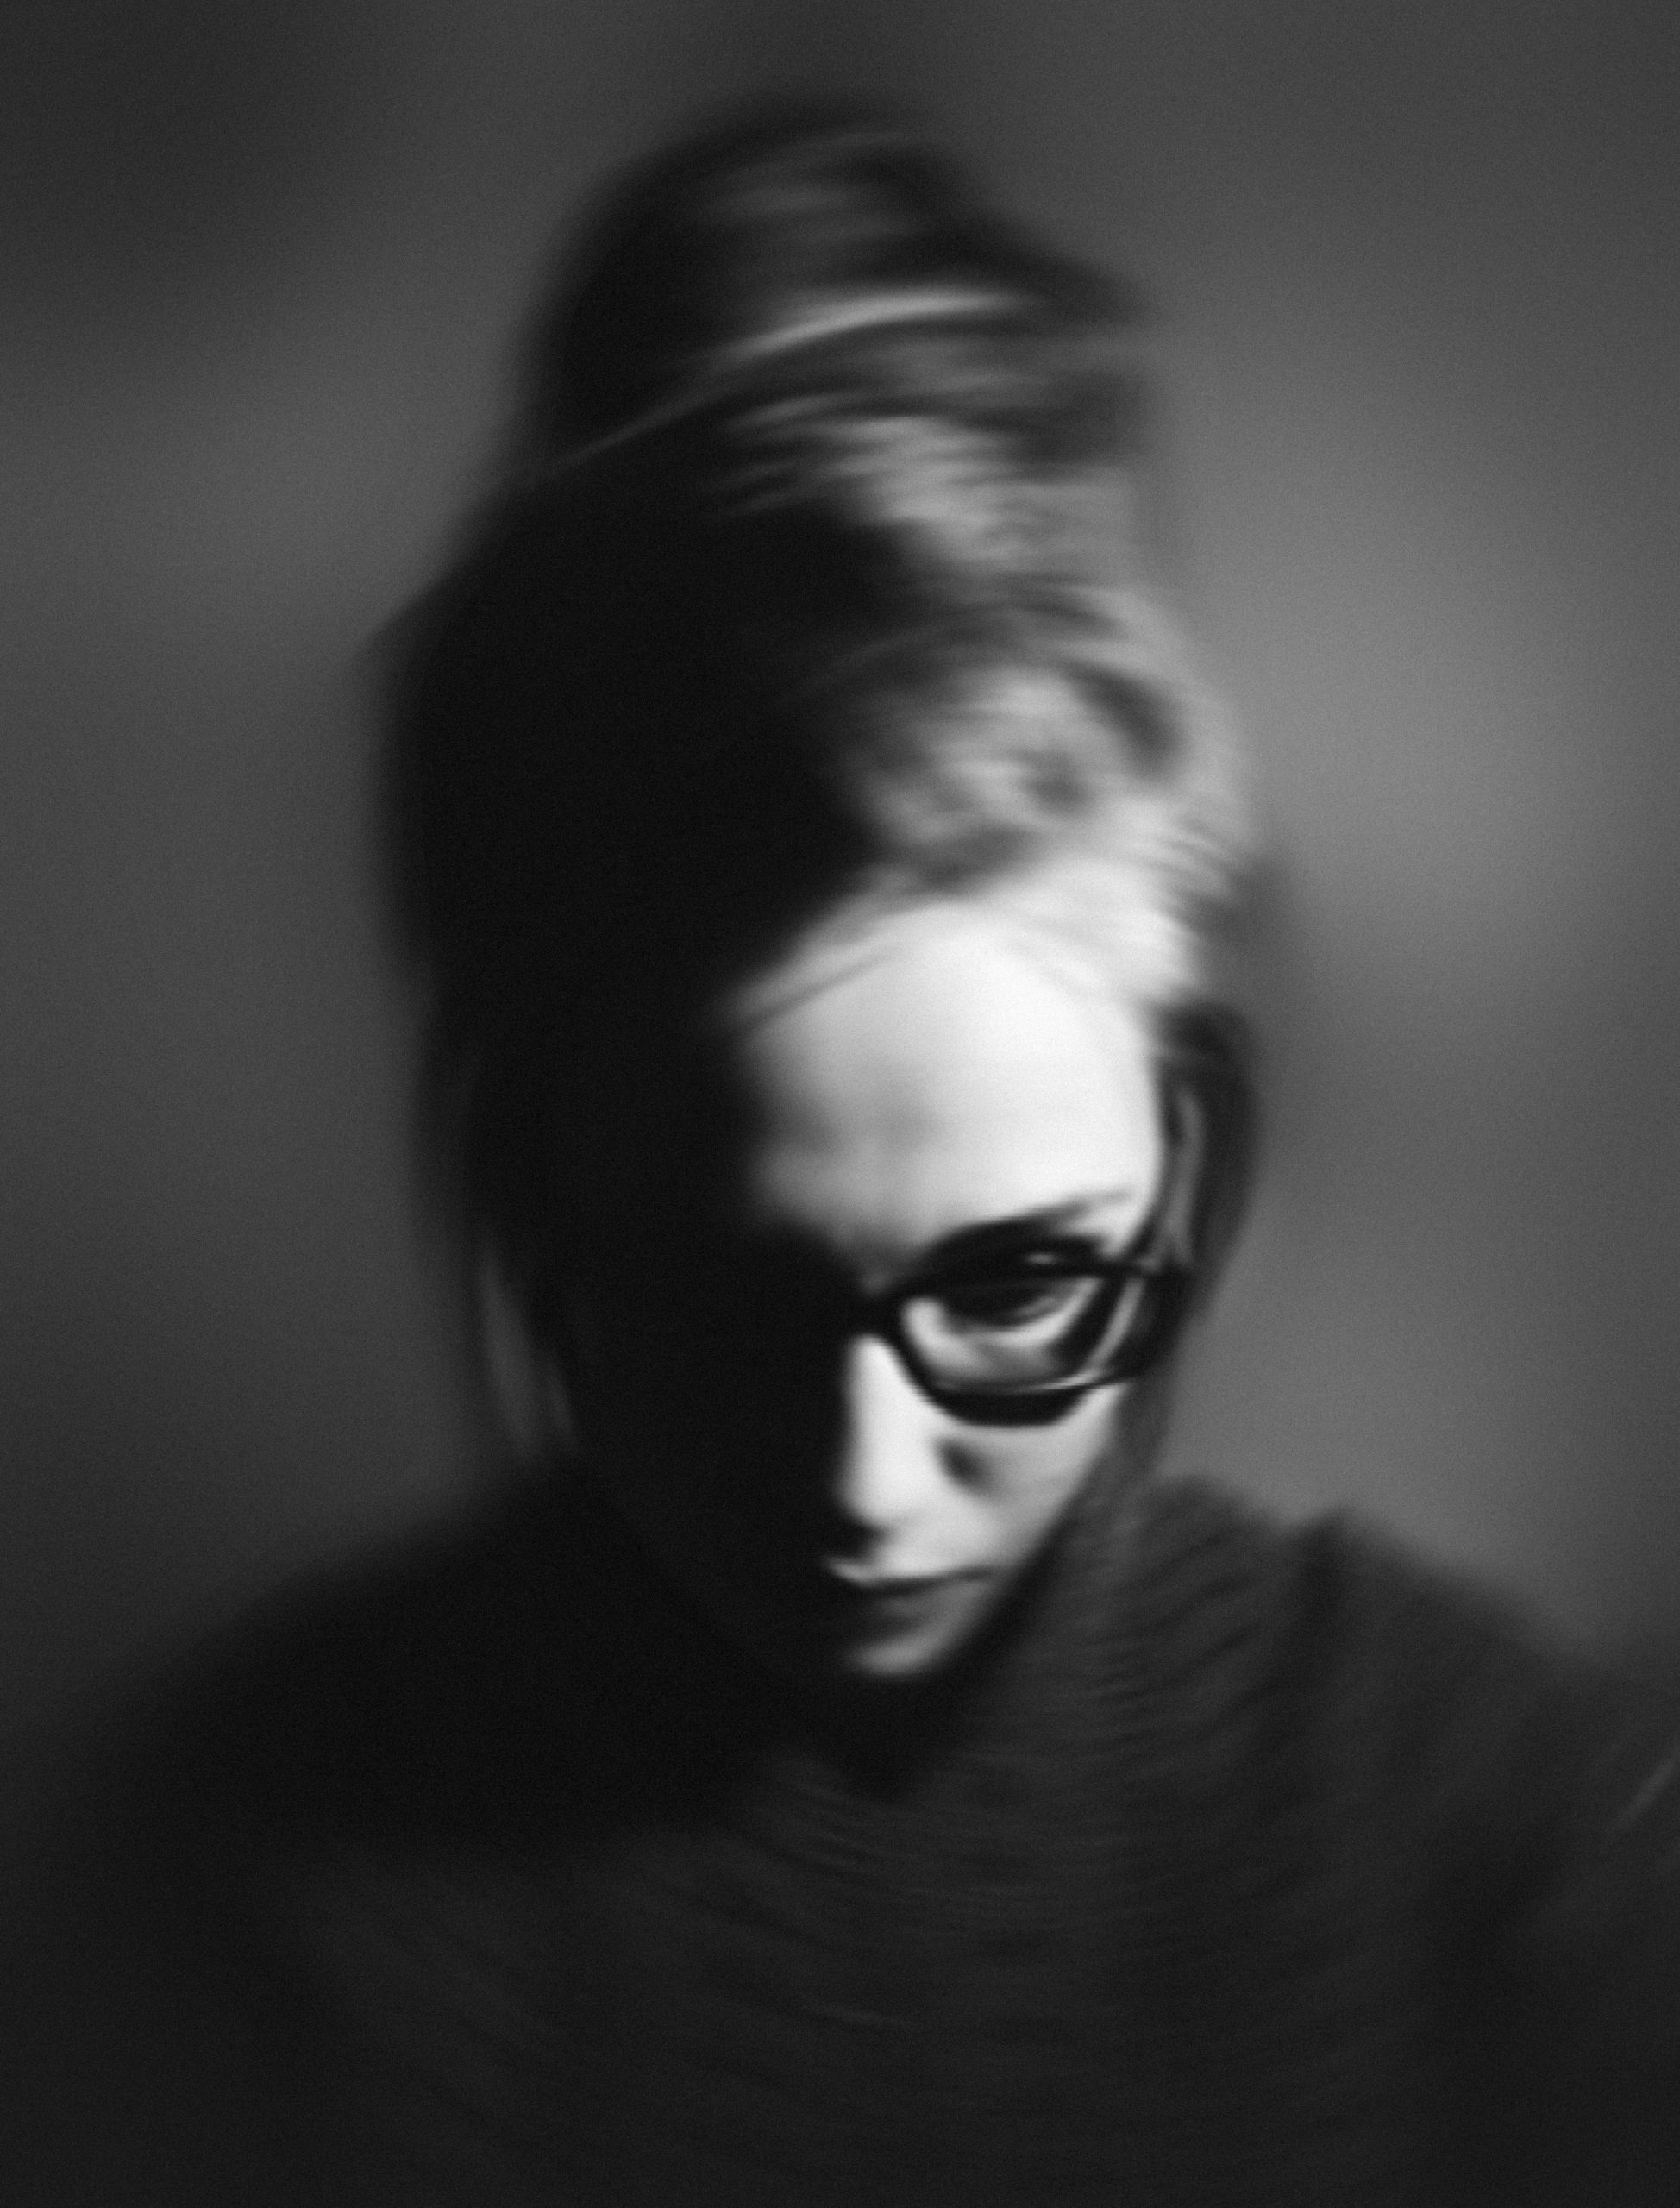 Woman with glasses looking down and sad in blurry black and white photo. She needs Trauma Therapy near Tampa, FL at Sheltering Oak Counseling for PTSD Treatment in Wesley Chapel, FL